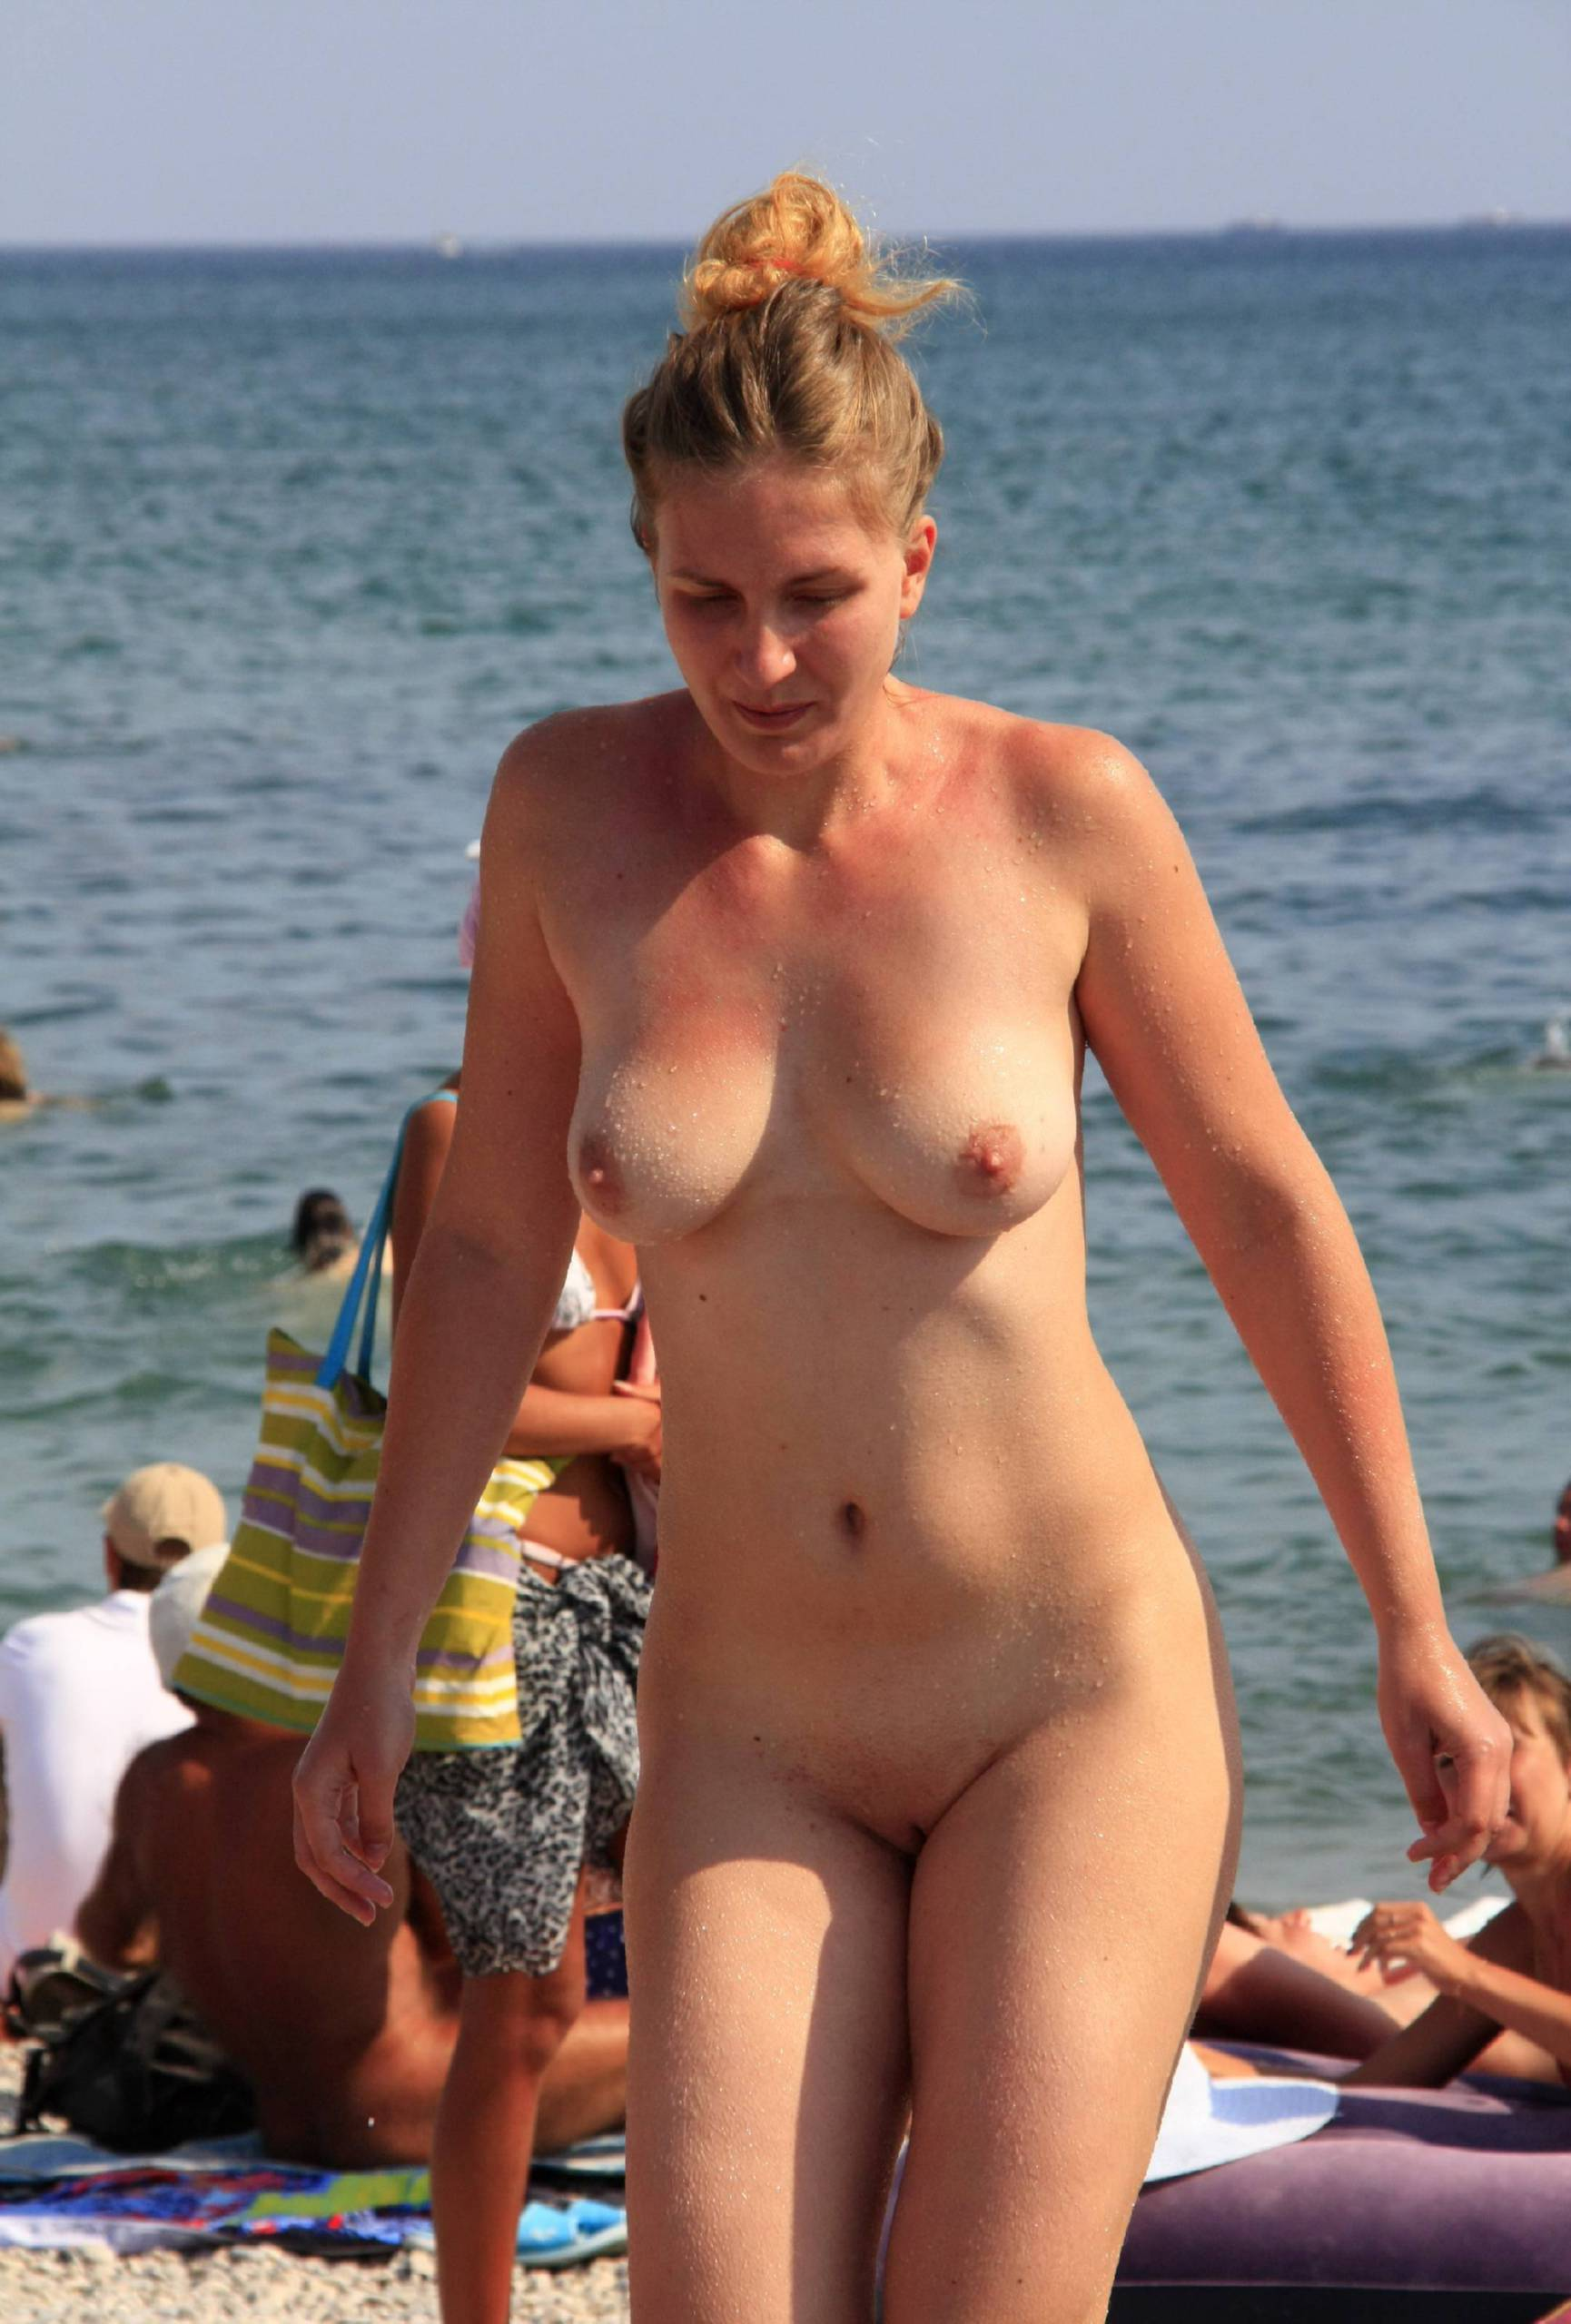 Nudist Gallery Sand Beach Get Up and Go - 1